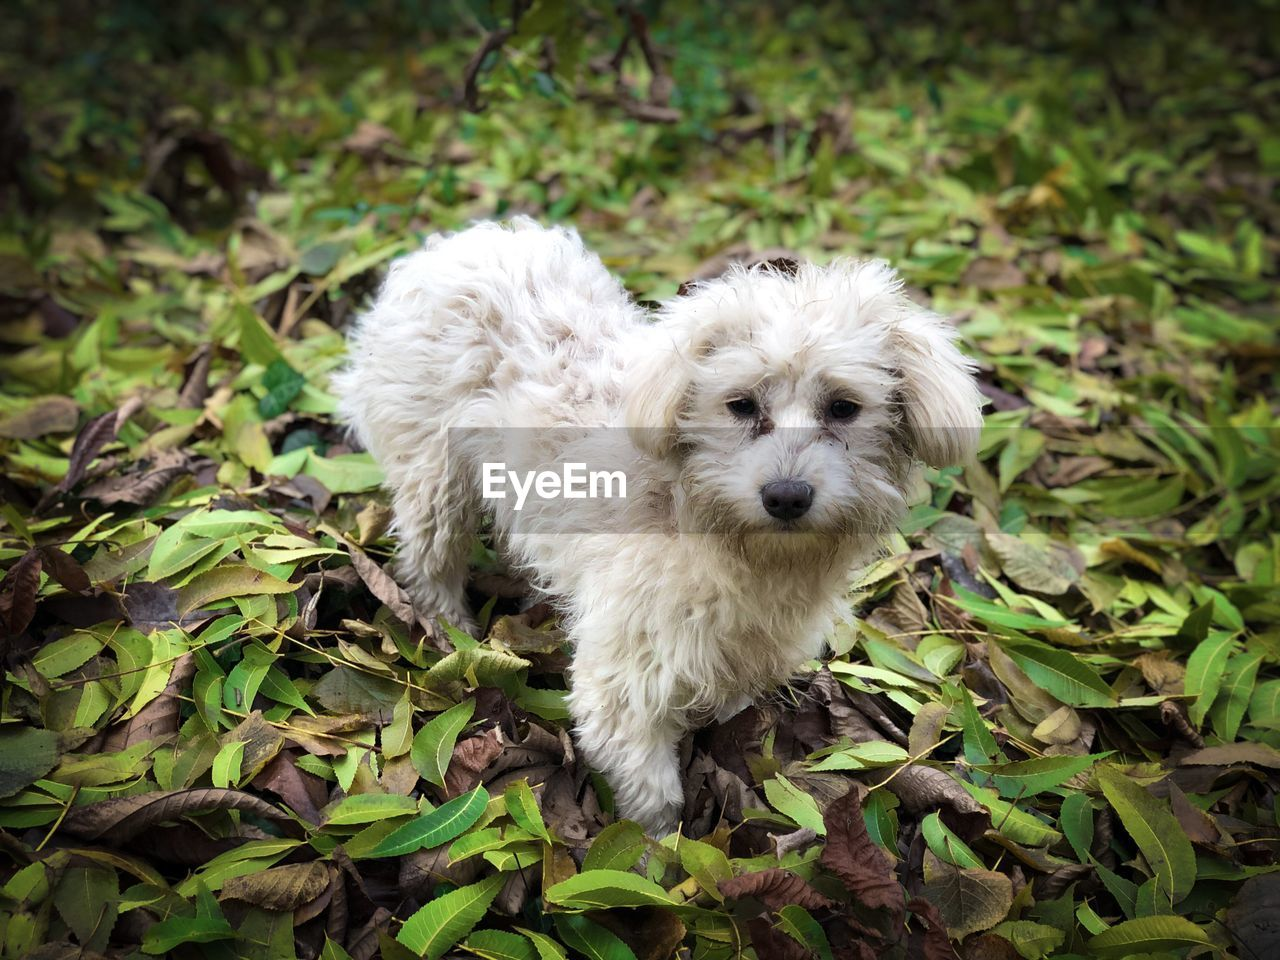 Maltese dog in colorful autumn leaves fallen on the ground